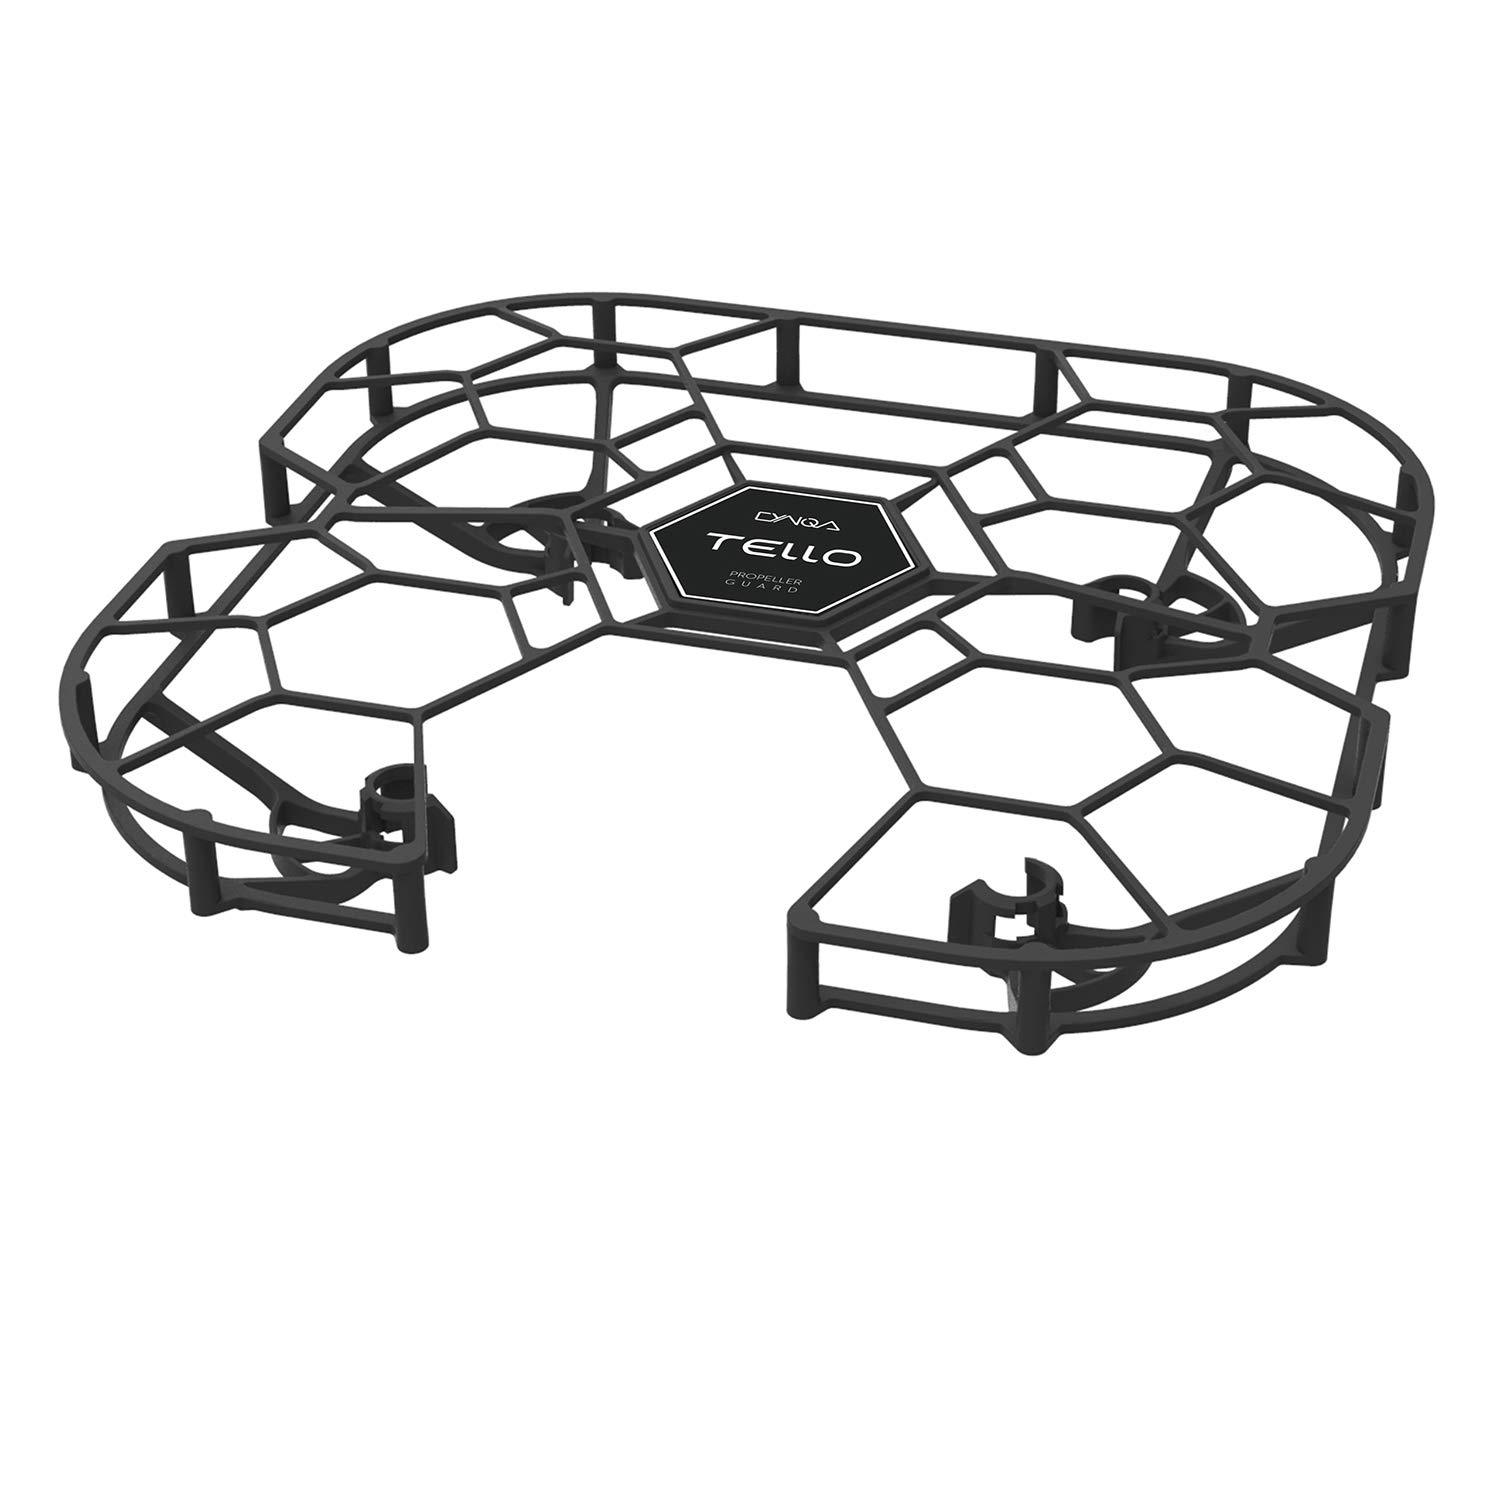 DJI Unmanned Aerial Vehicle Tello All-directional Protection Cover Propeller Protective Frame Accessories Anticollision Coil